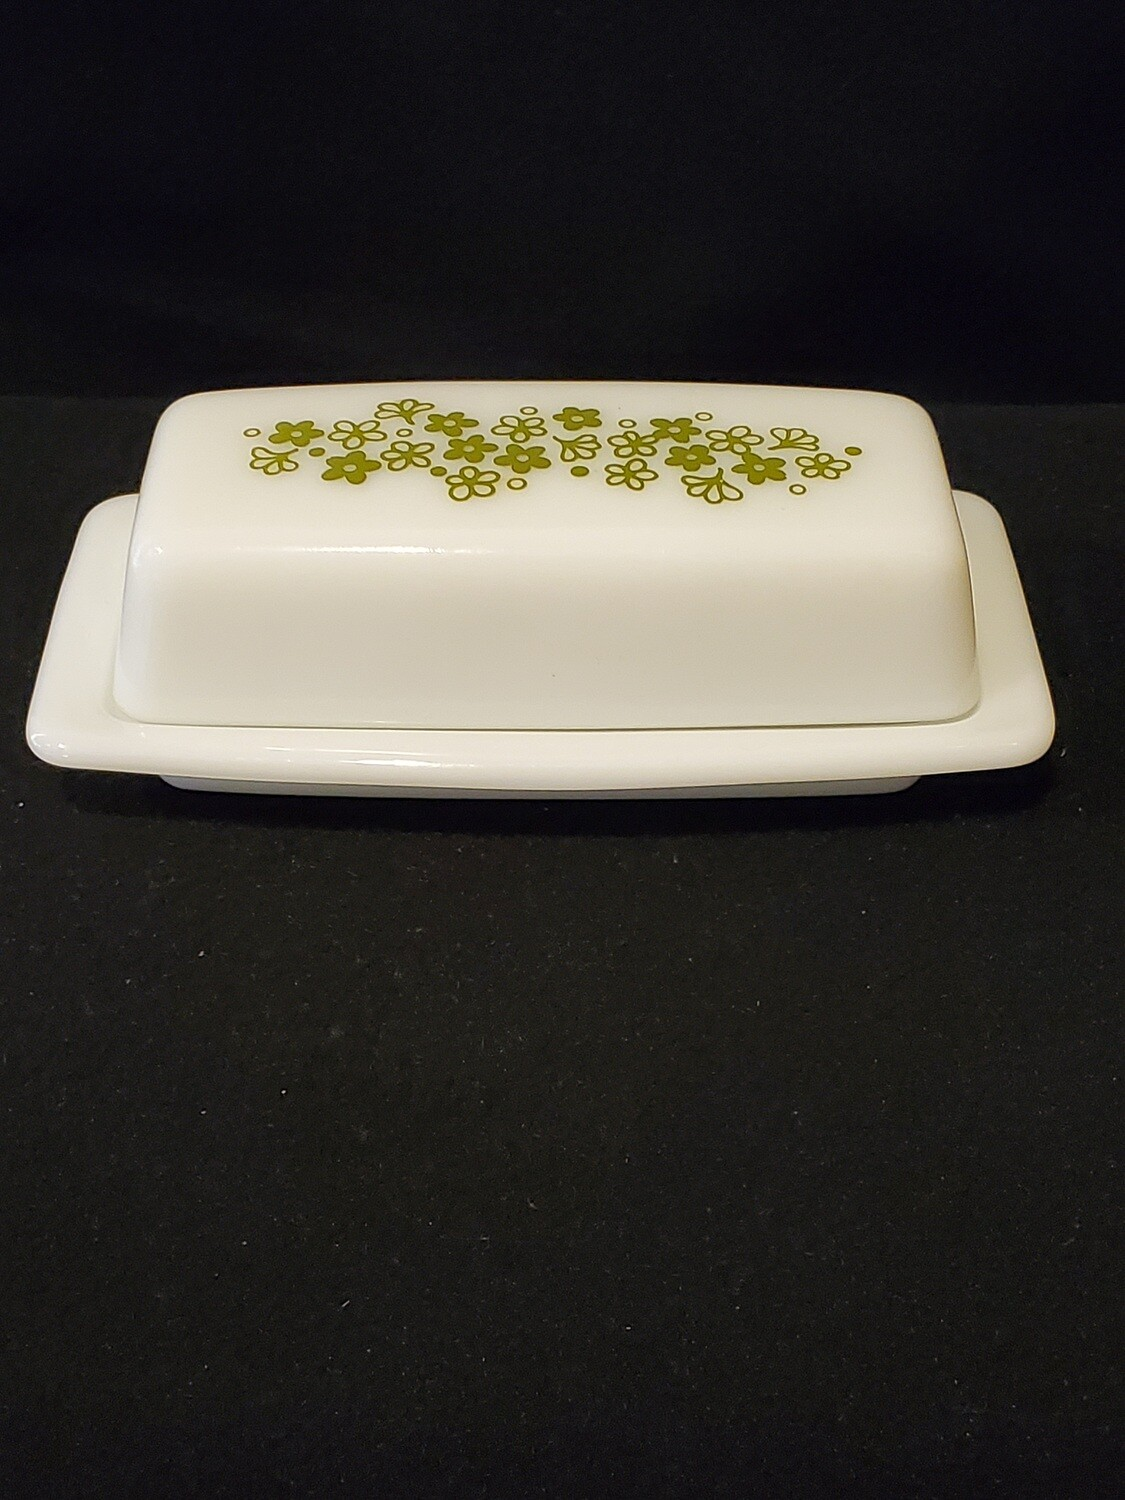 Pyrex Butter Dish with Cover, Green Crazy Daisy Flower Pattern #402